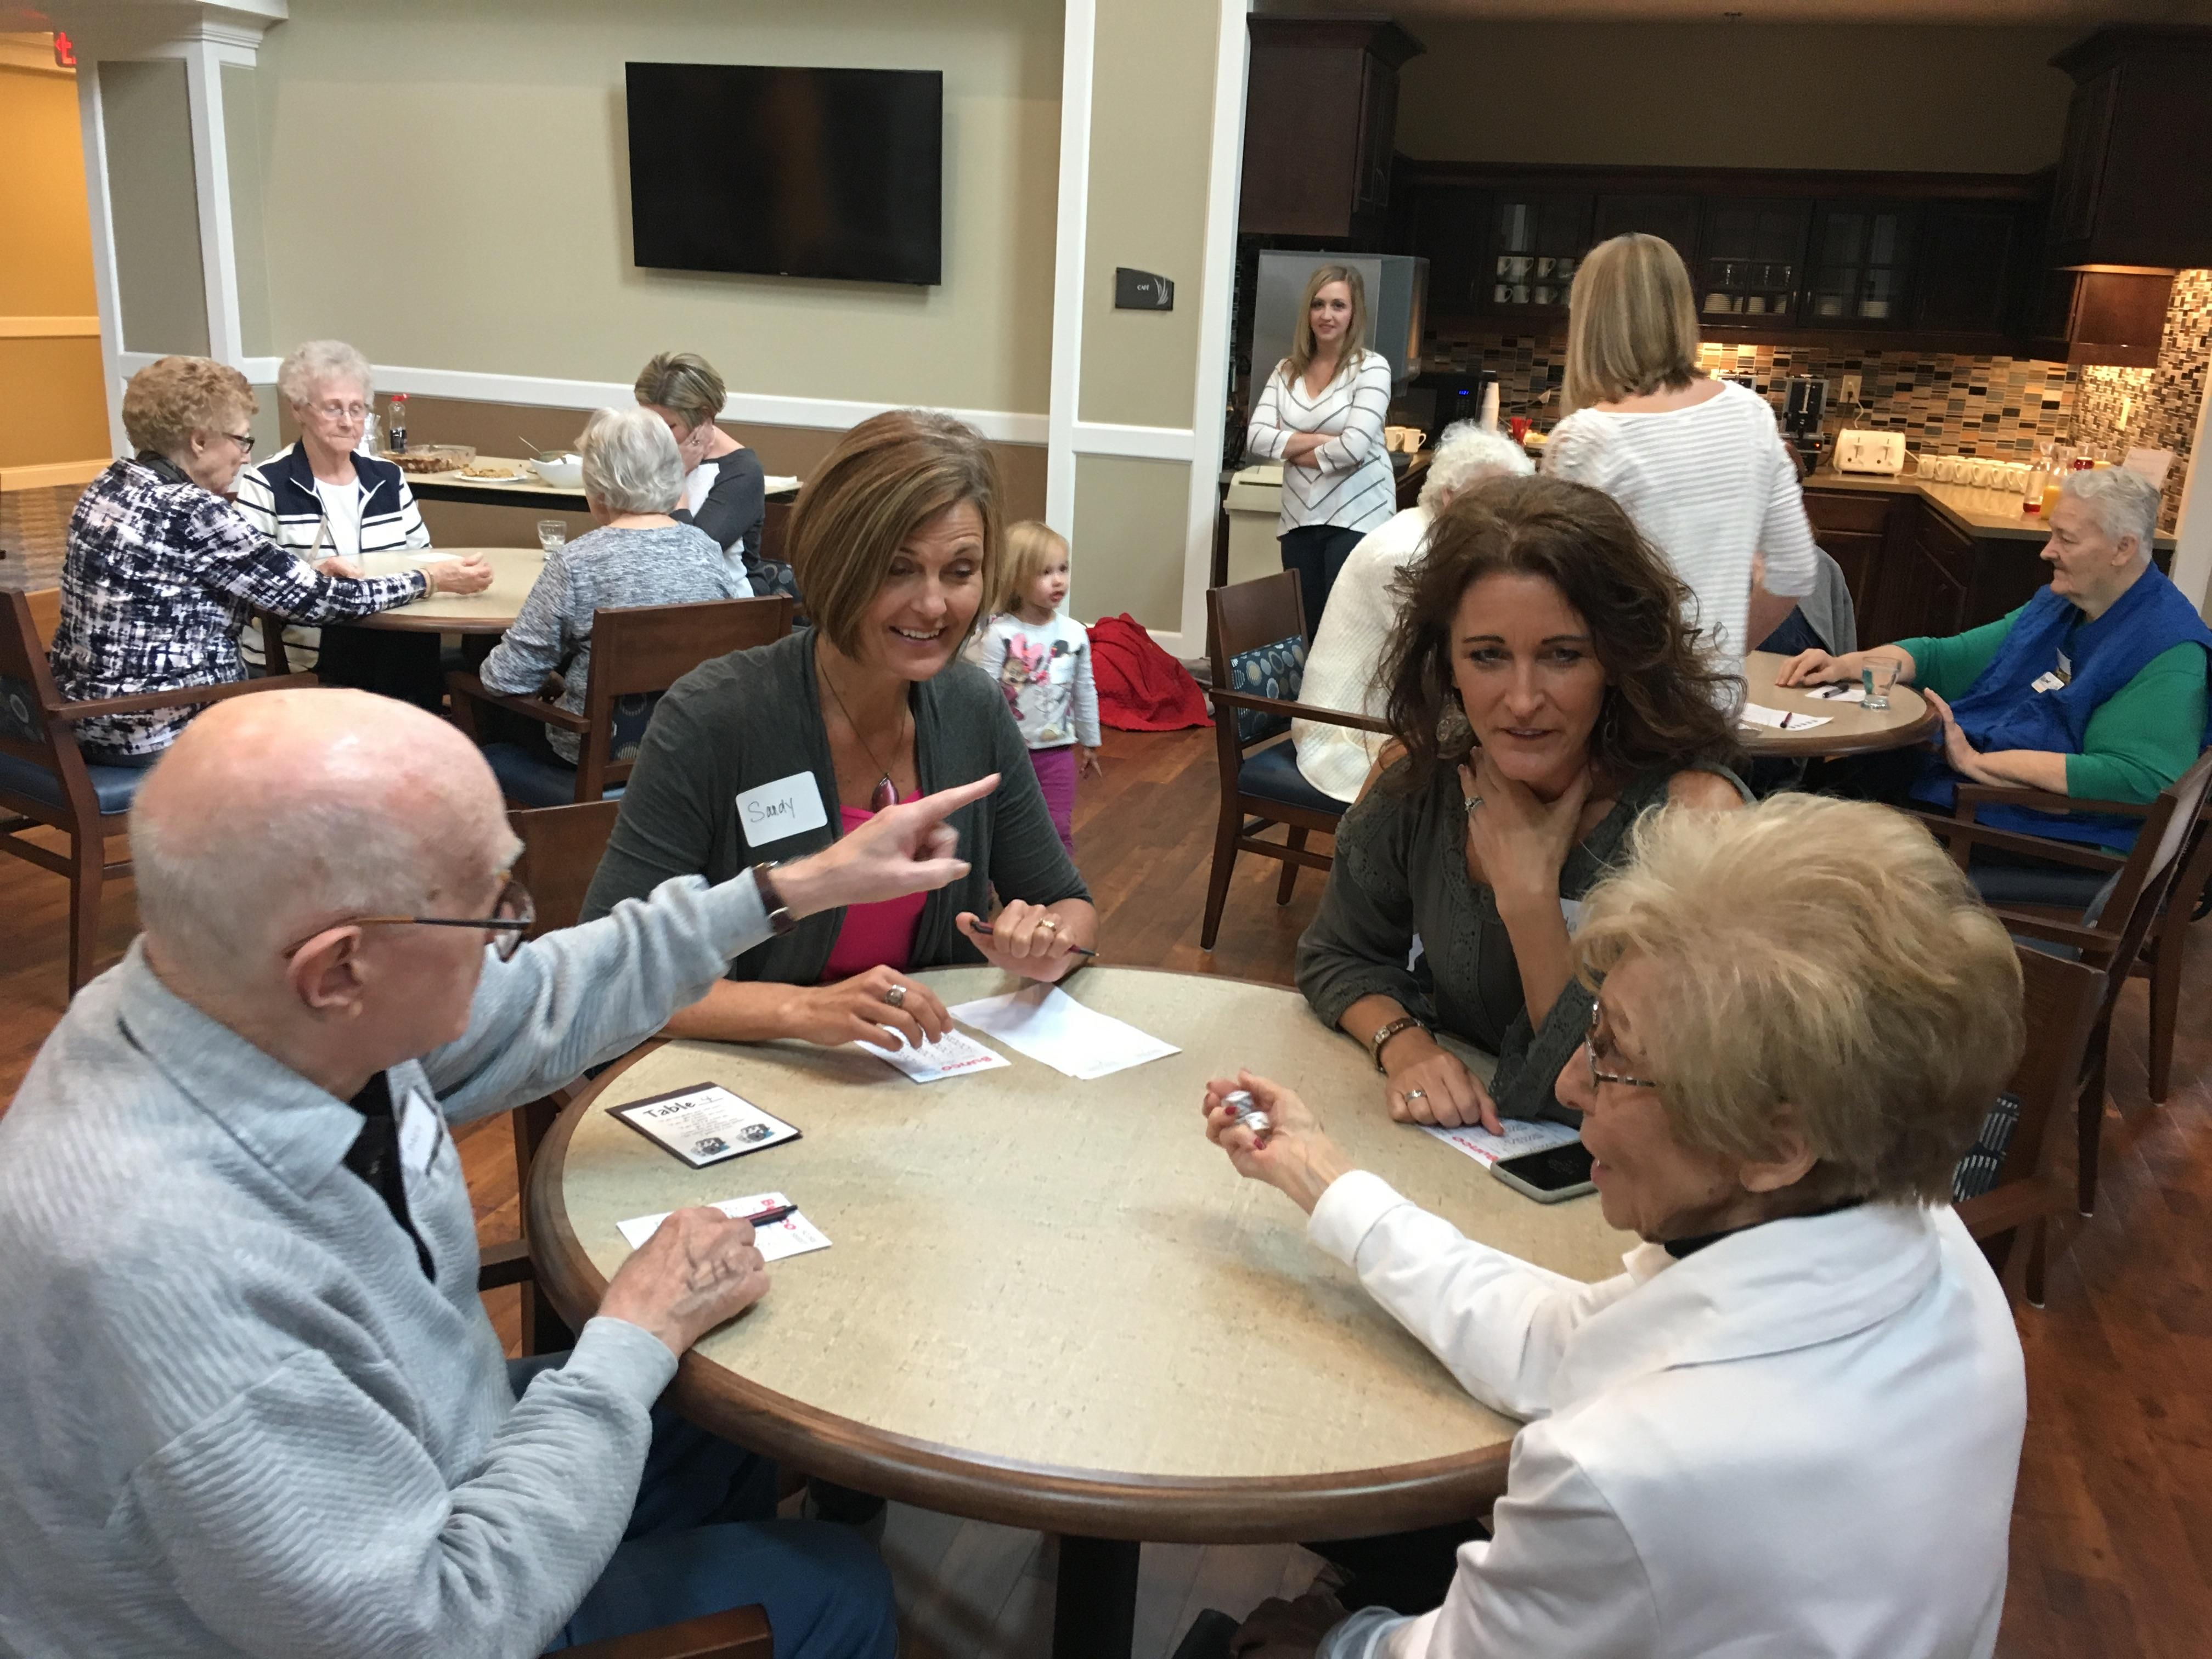 Playing Bunco with our Park Place Friends